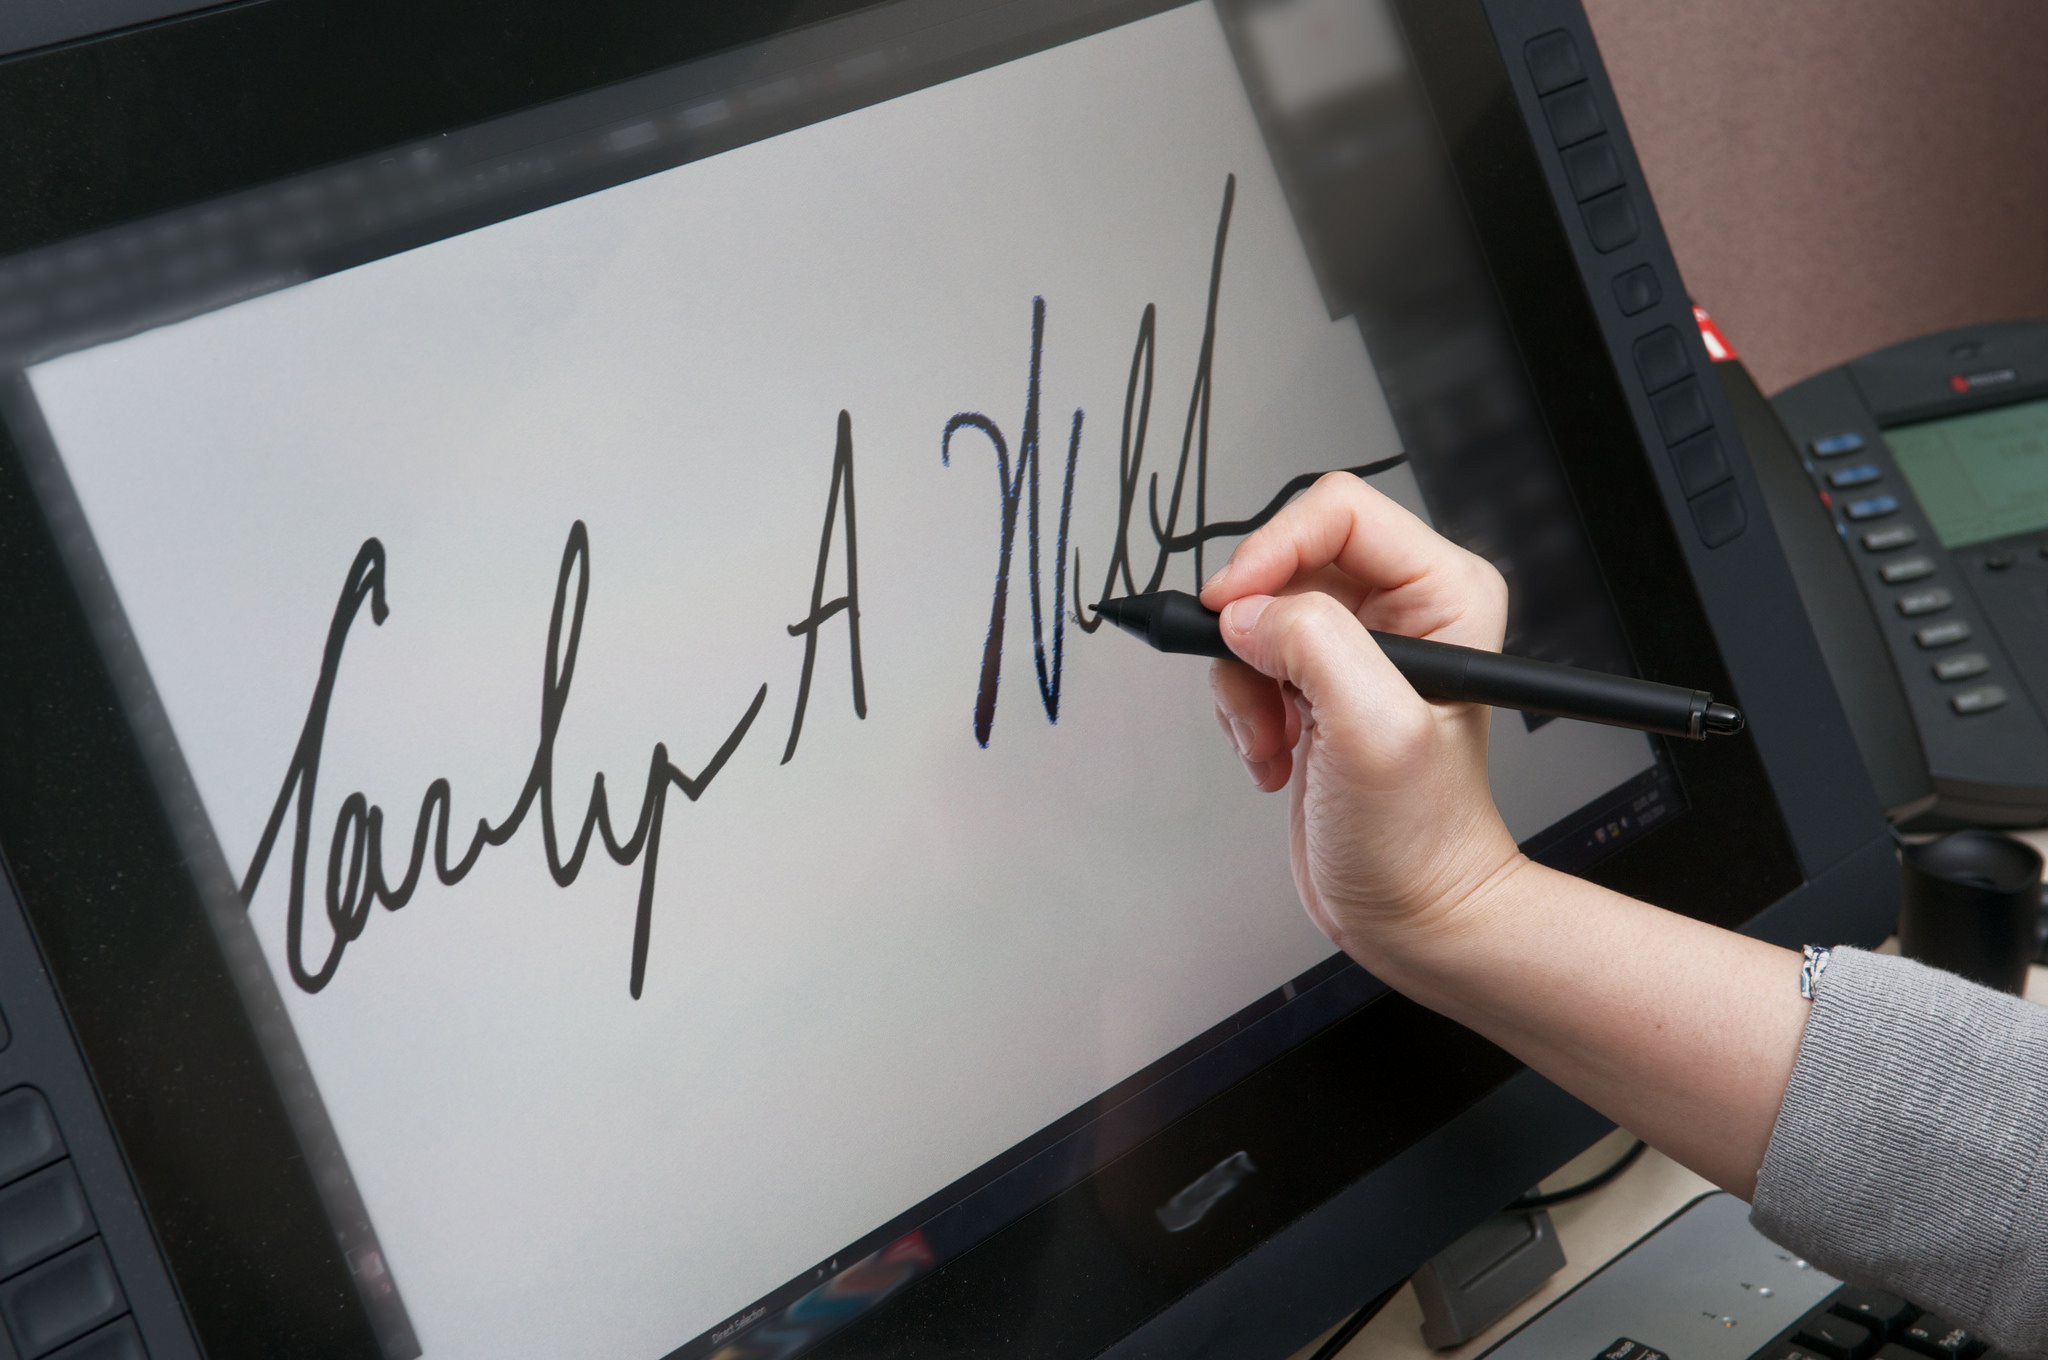 Senior Deputy Governor Carolyn Wilkins' signature goes digital as a designer prepares a bank note proof.